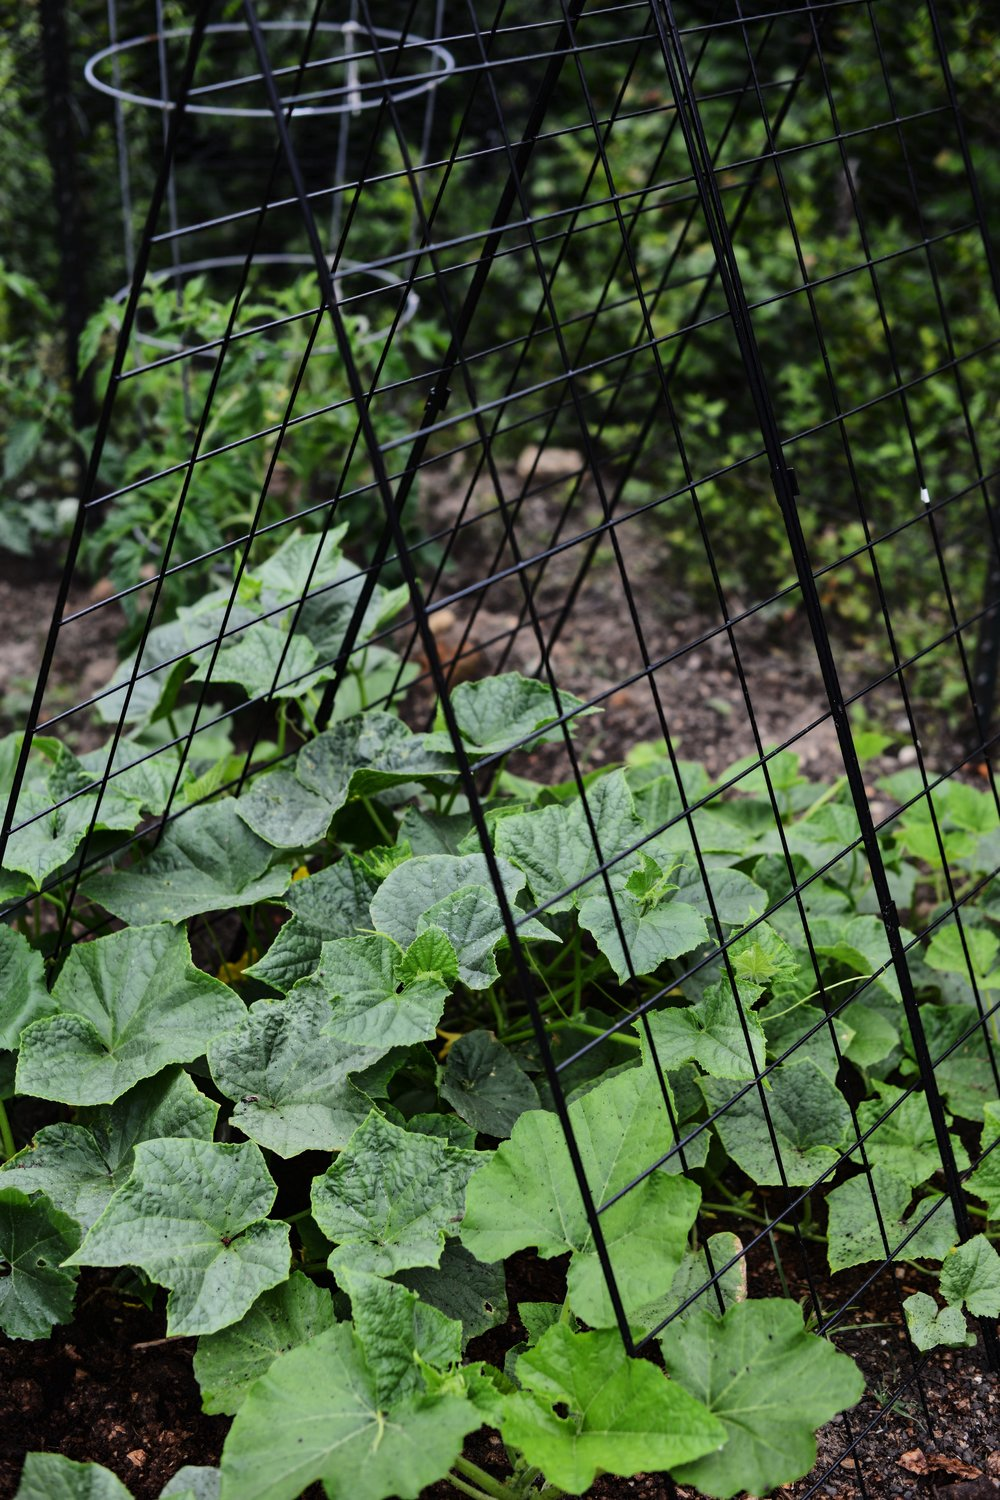 Future pickles taking over this Deluxe Cucumber Trellis by Gardeners Supply Co.